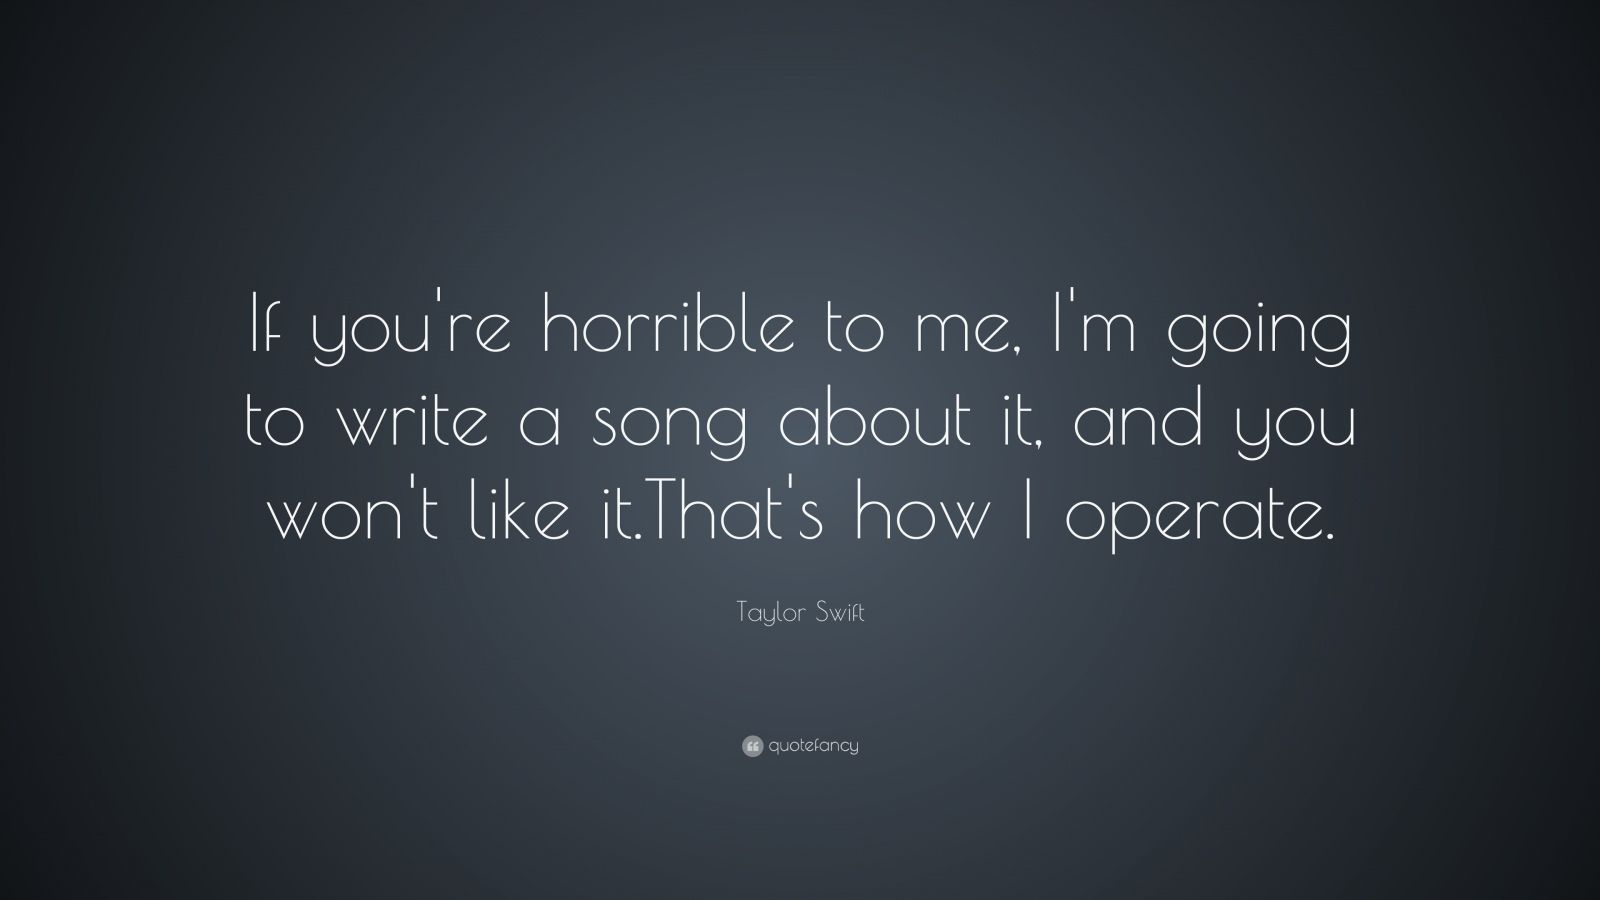 """Taylor Swift Quote: """"If you're horrible to me, I'm going to write a song about it, and you won't like it.  That's how I operate."""""""